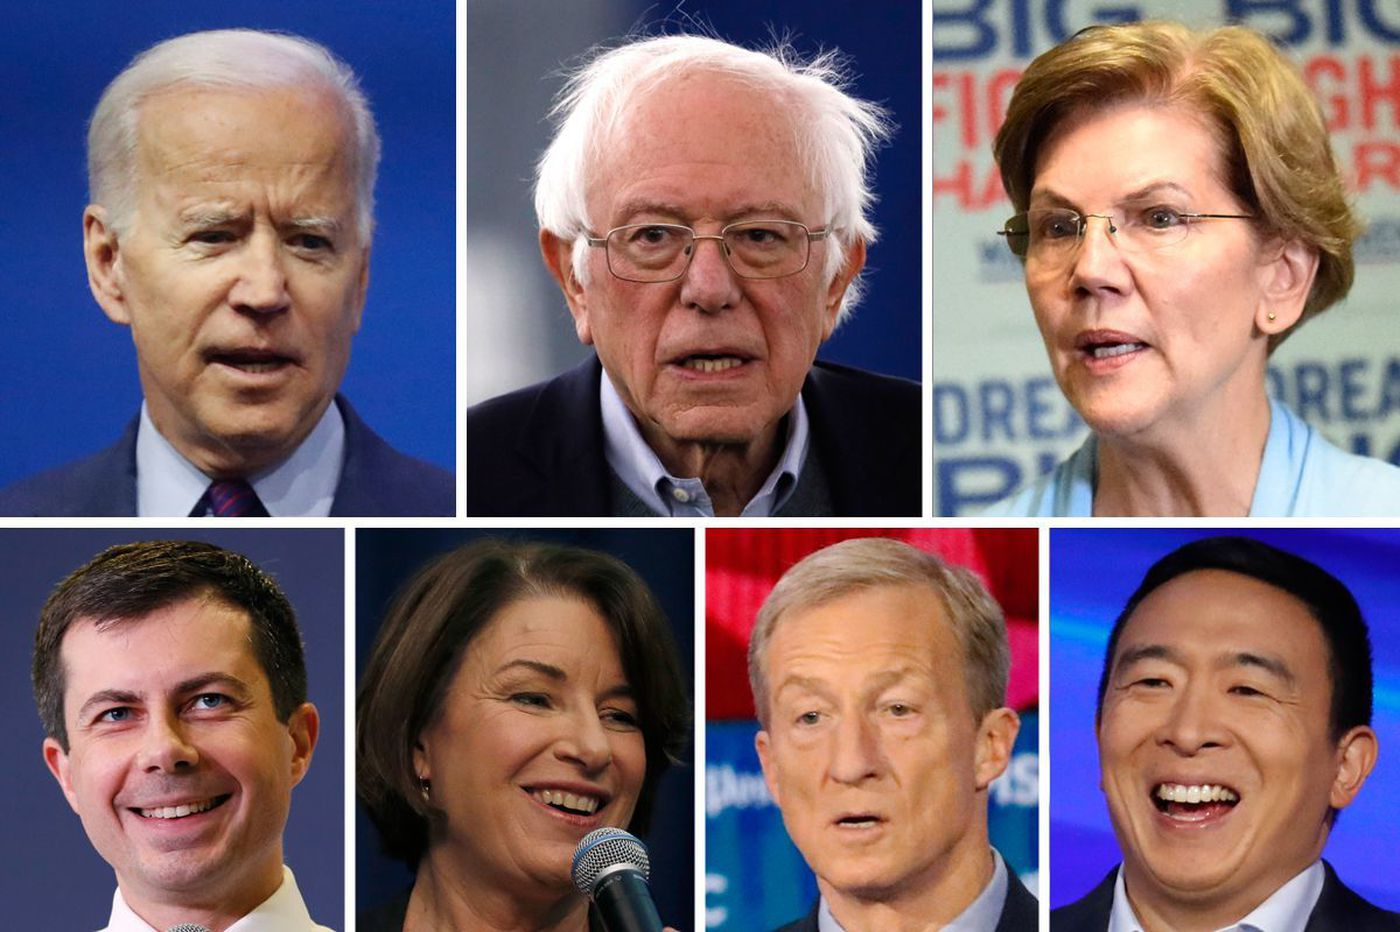 Democratic debate: Stage will be a bit more crowded, but all eyes will be on Biden